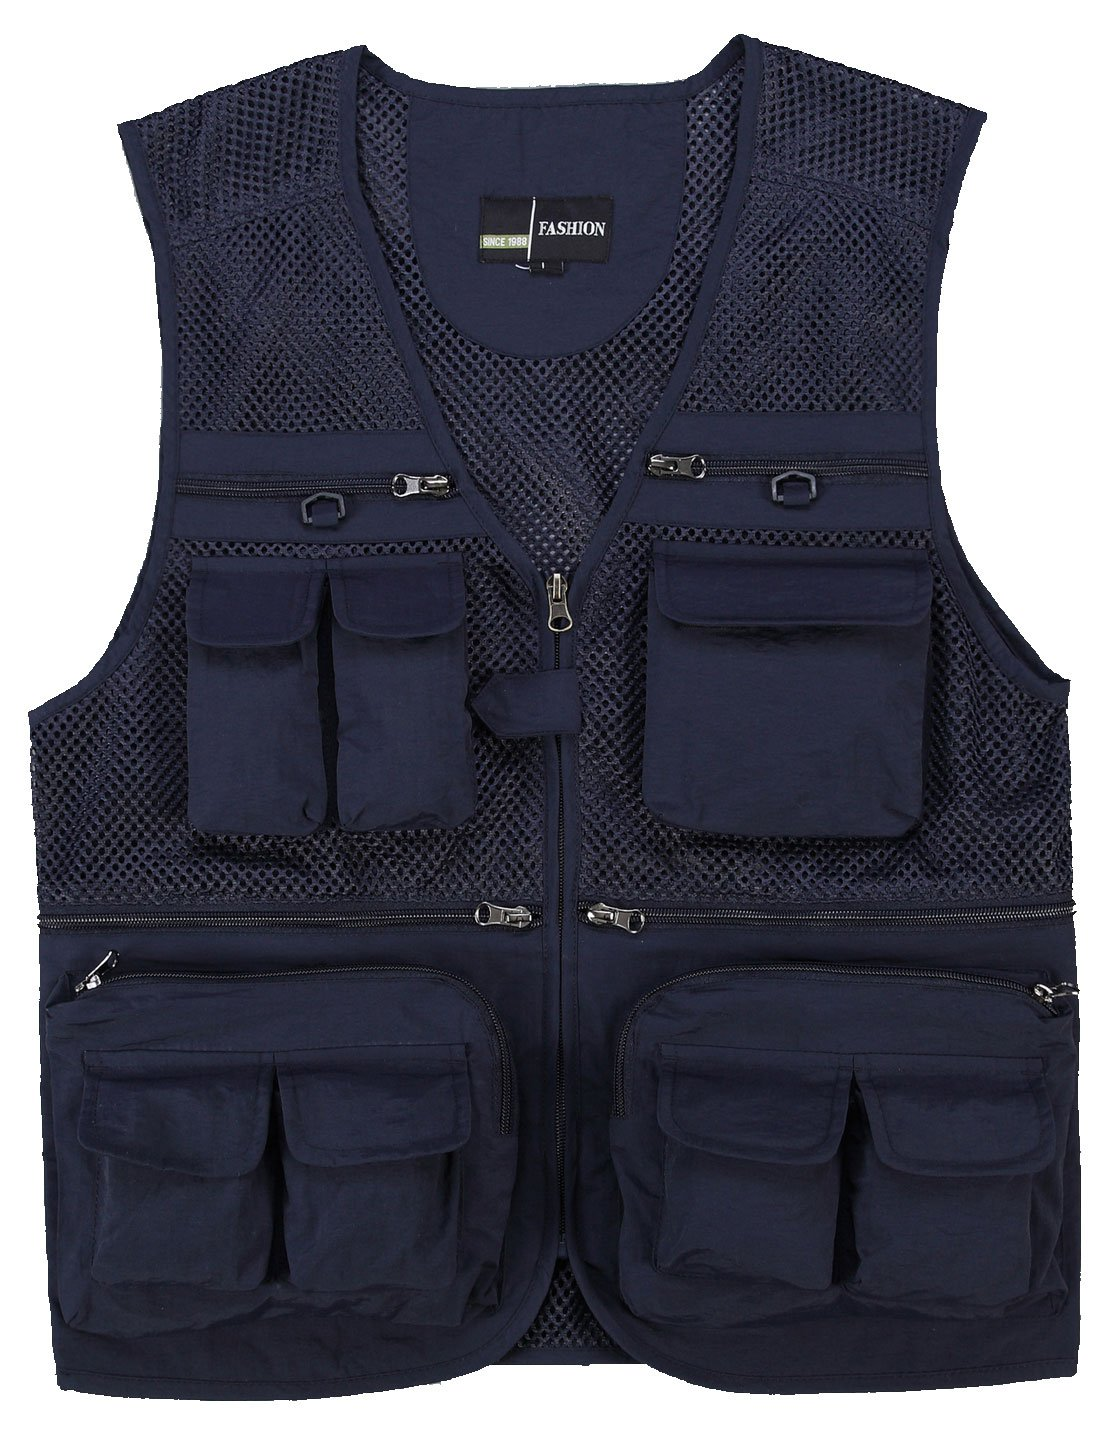 Zhusheng Men's Mesh Multi Pockets Photography Hunting Fly Fishing Outdoor Quick Dry Vest Breathable Waistcoat Jackets (Small(Asia Tag XL), Navy Blue)